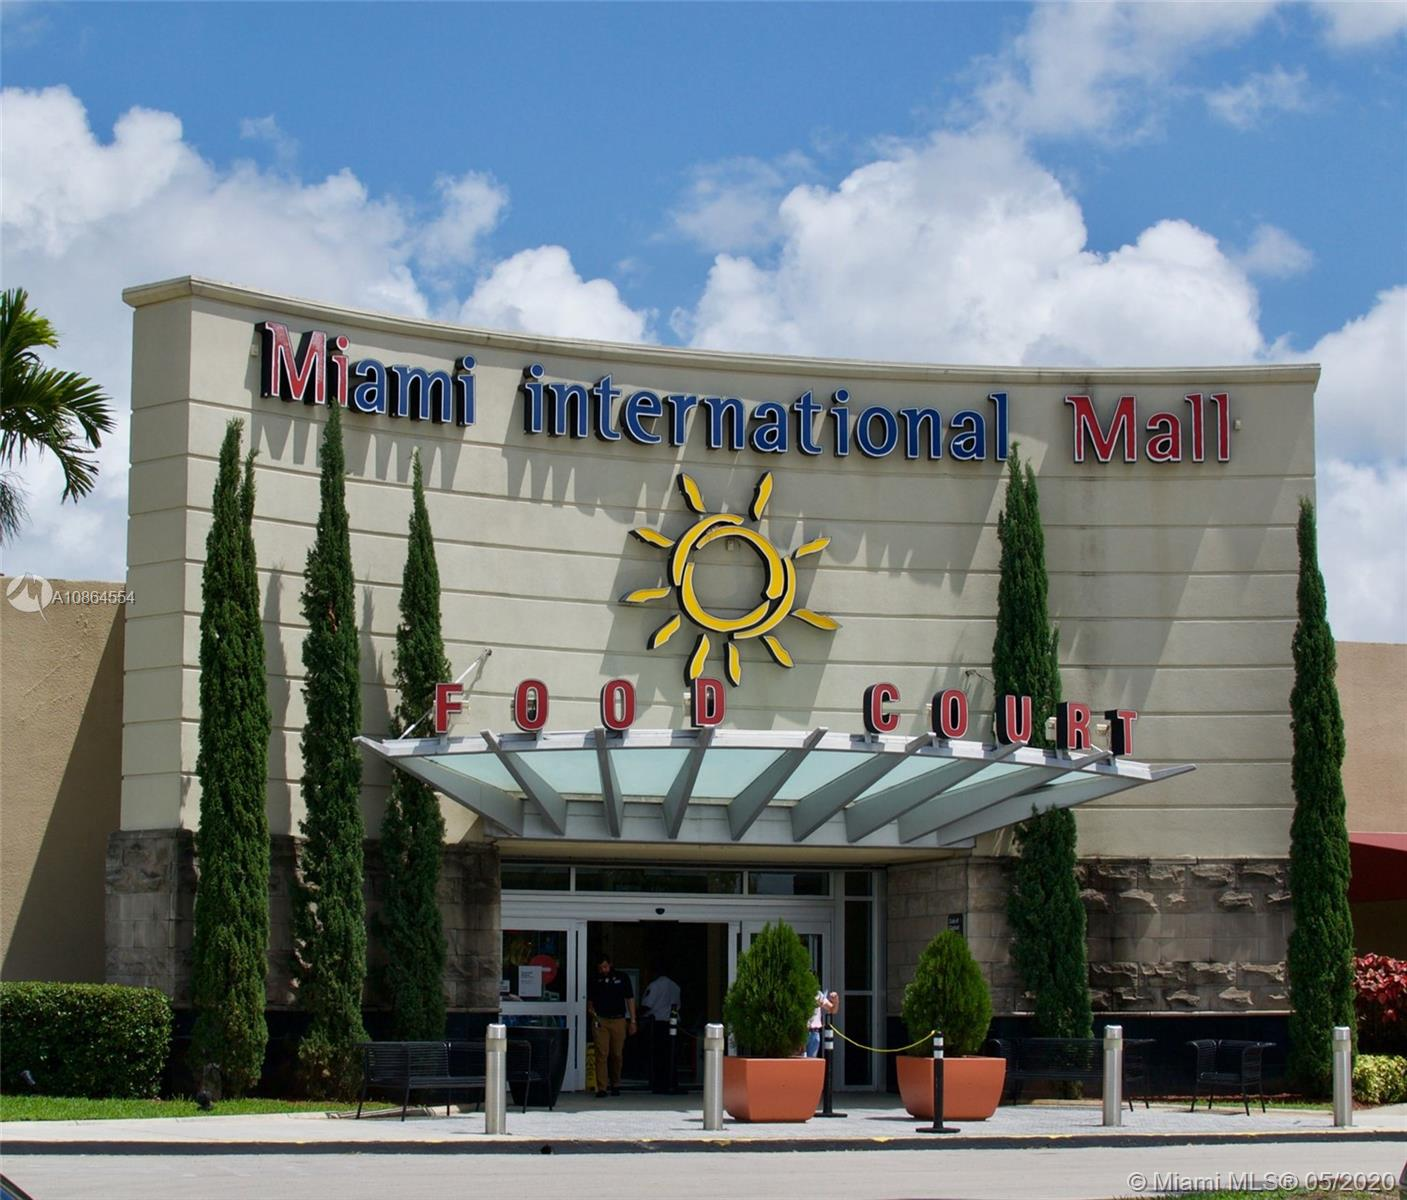 image #1 of property, 1455 Nw 107 Ave Miami International Mall